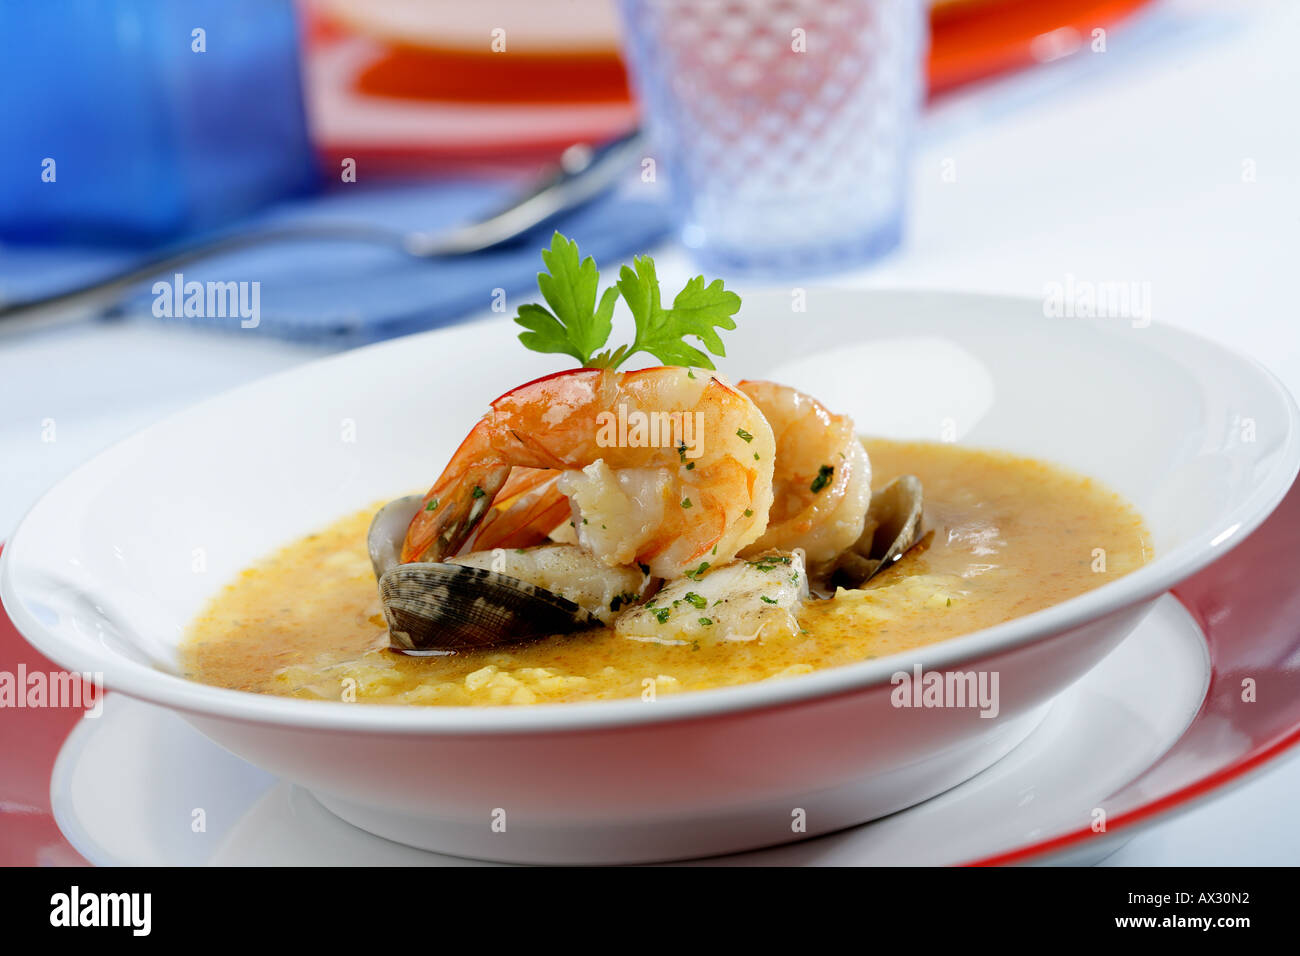 Fish and seafood soup stock photo royalty free image for Fish and shrimp soup